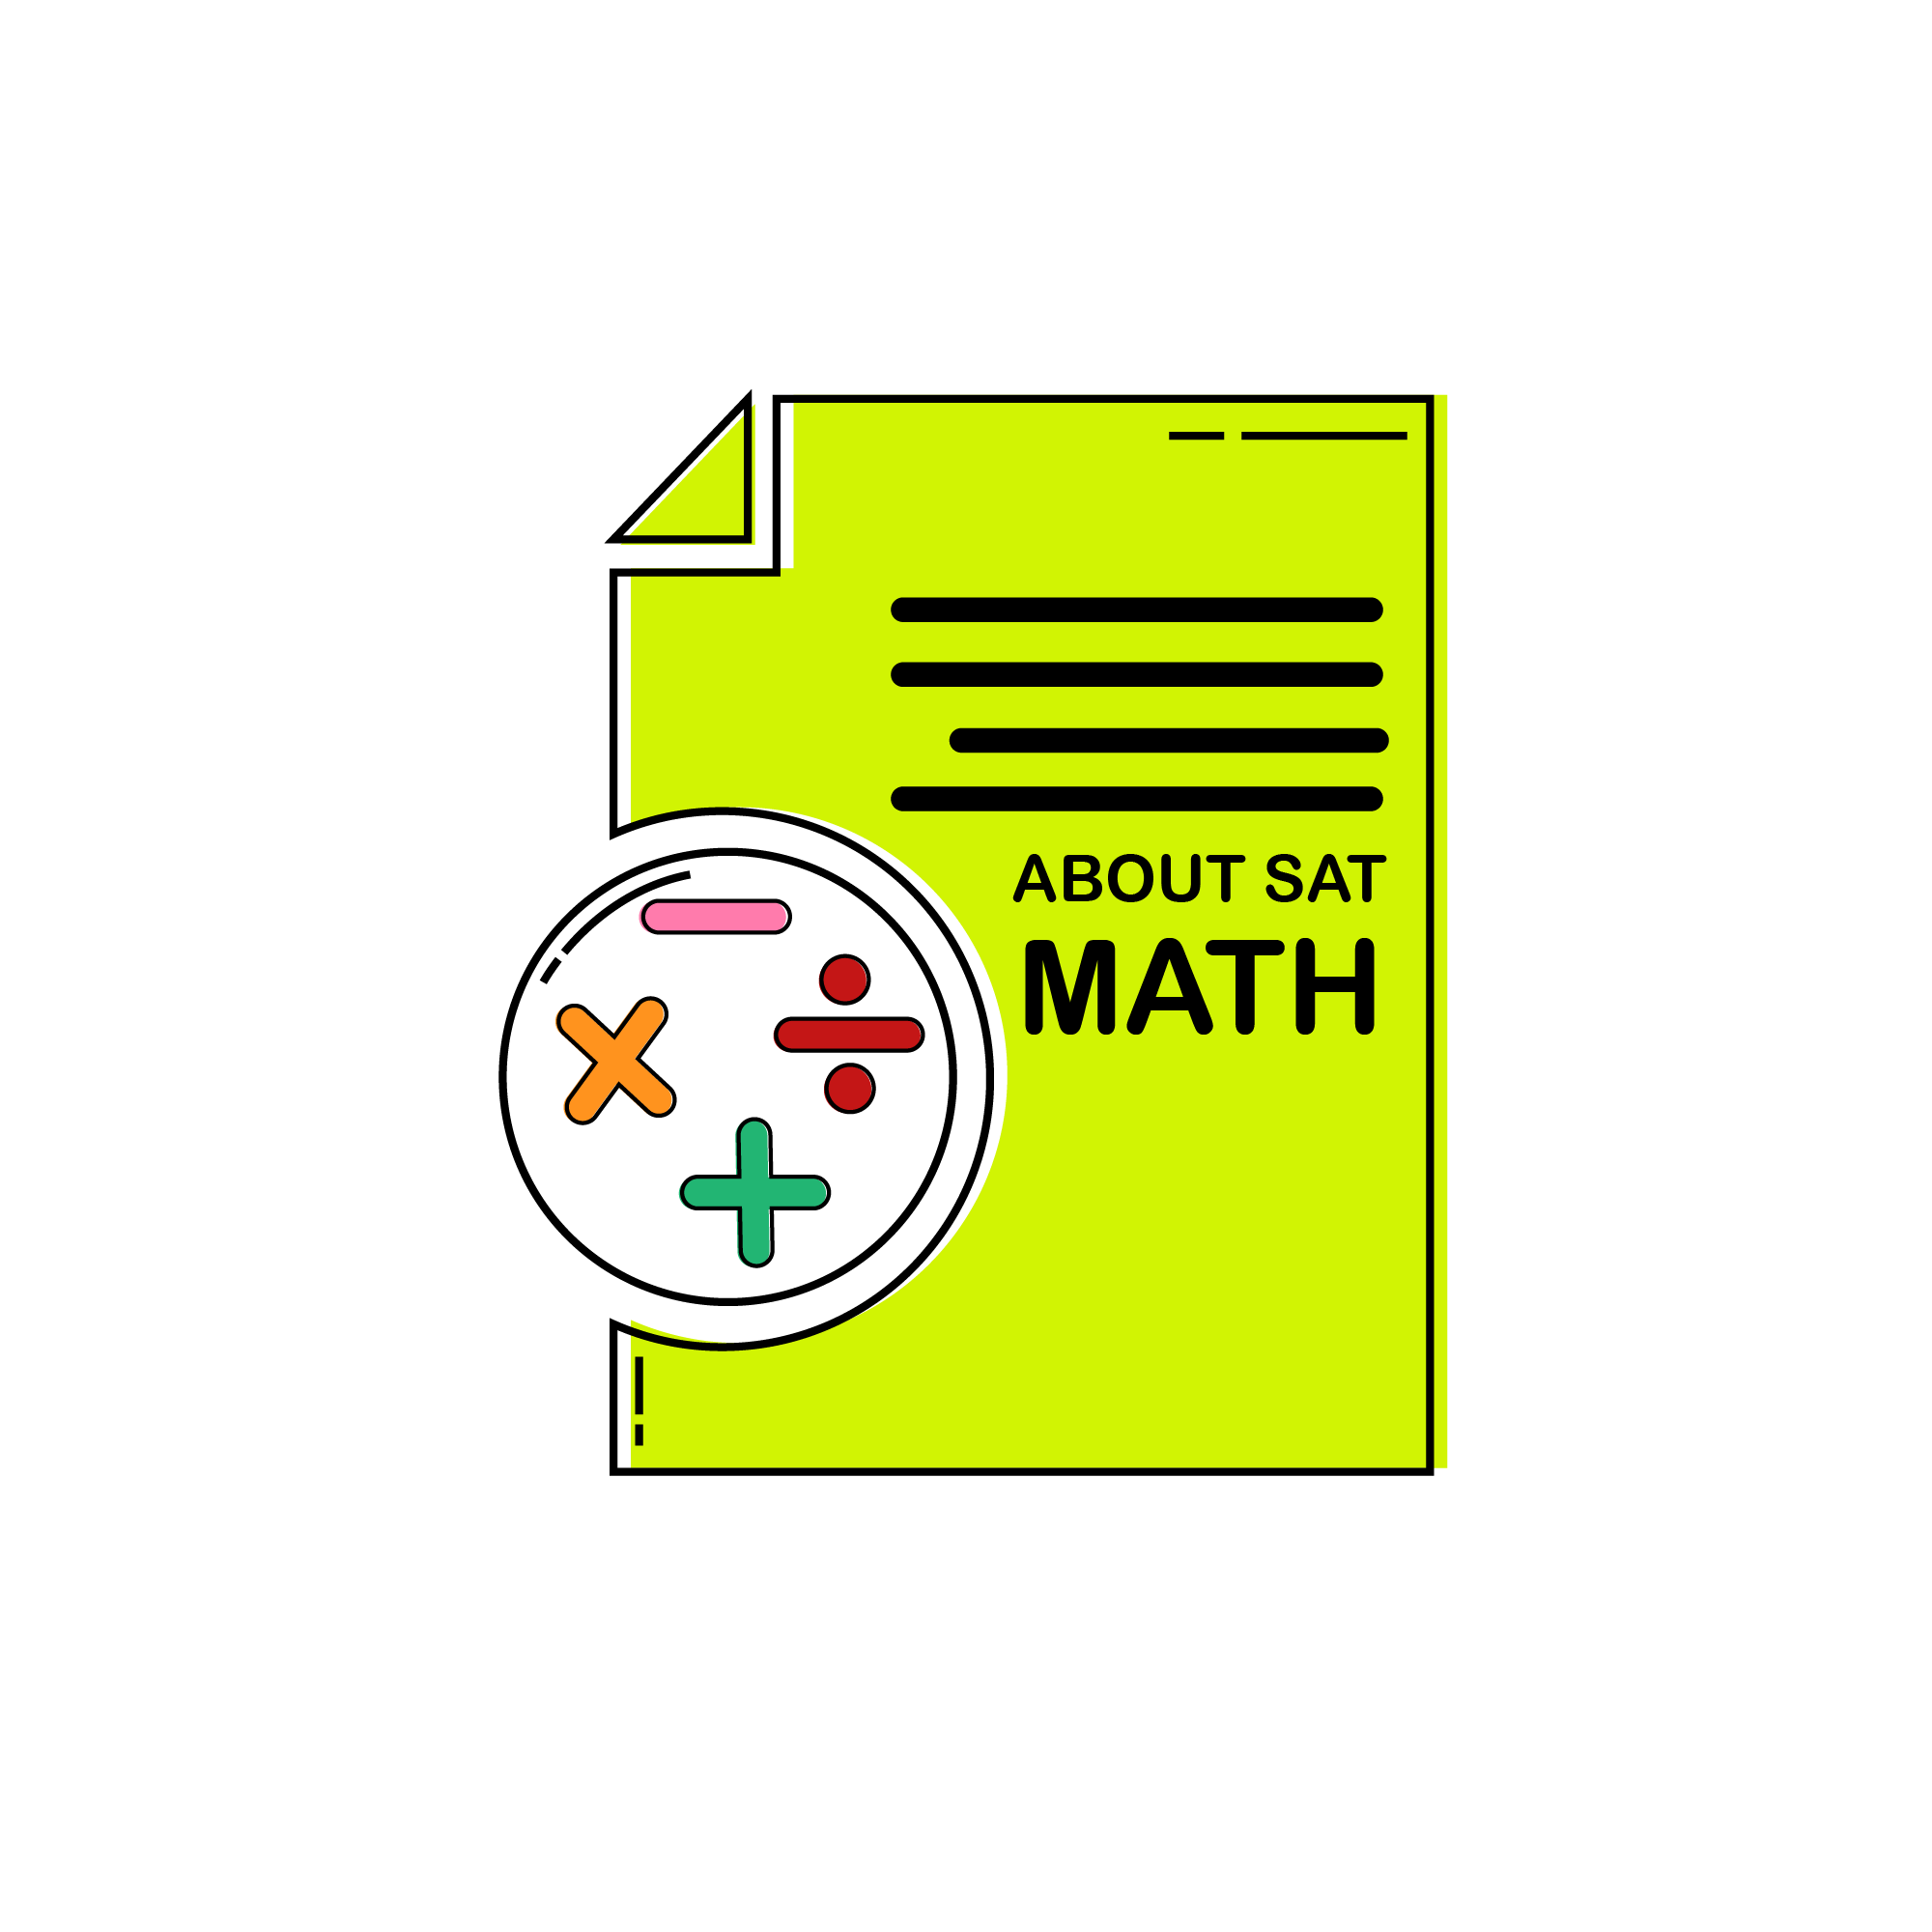 The SAT Math Test contains one 55-minute section with 38 questions (calculators ok) and one 25-minute section with 20 questions (calculators not permitted).